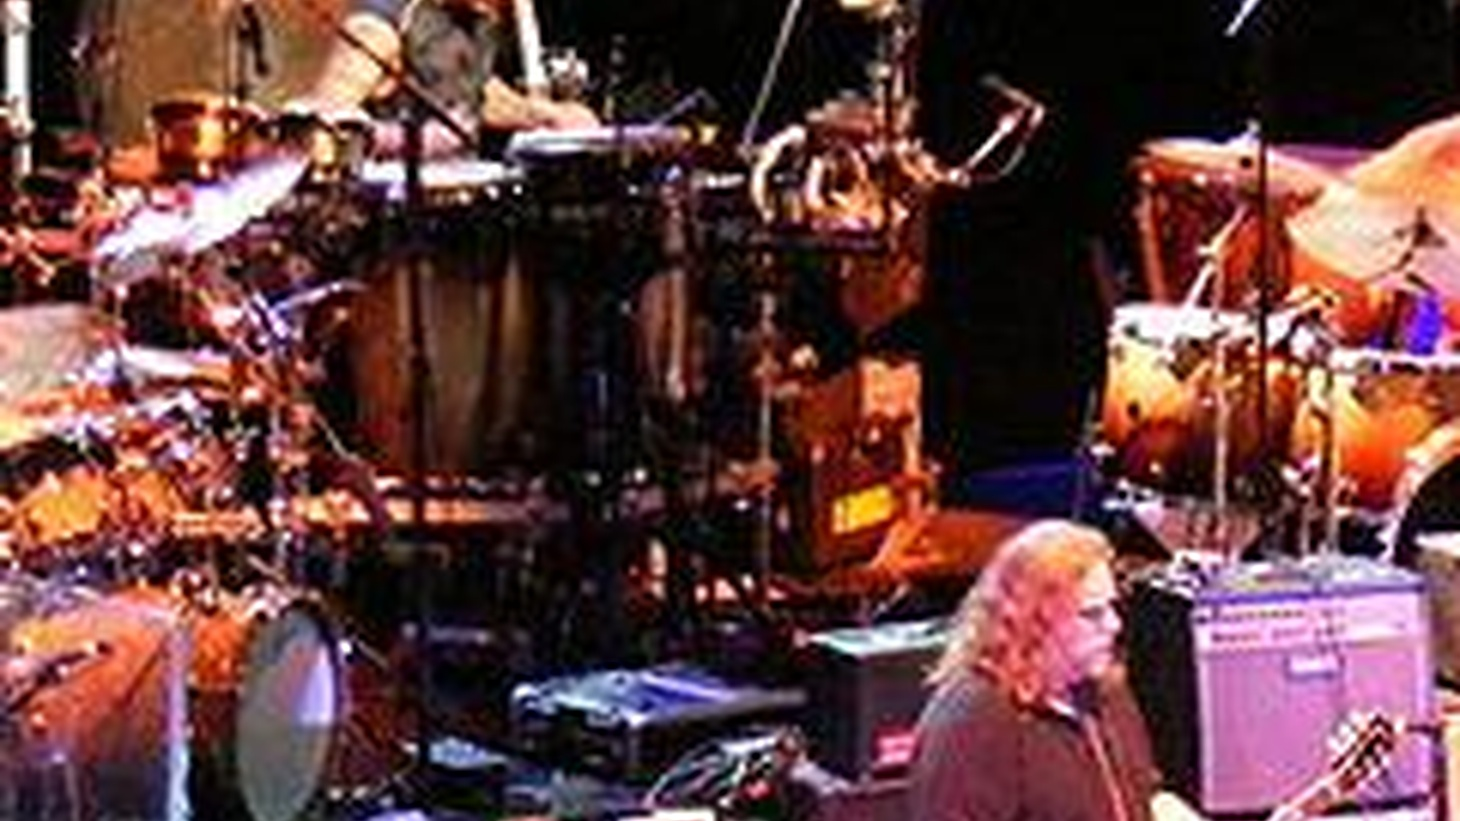 Last month, the legendary rock band, the Allman Brothers, filed a lawsuit for $13 million against Universal Music. The Allman Brothers contend that Universal has been shorting the band their full compensation for the sale of their music on outlets like iTunes...